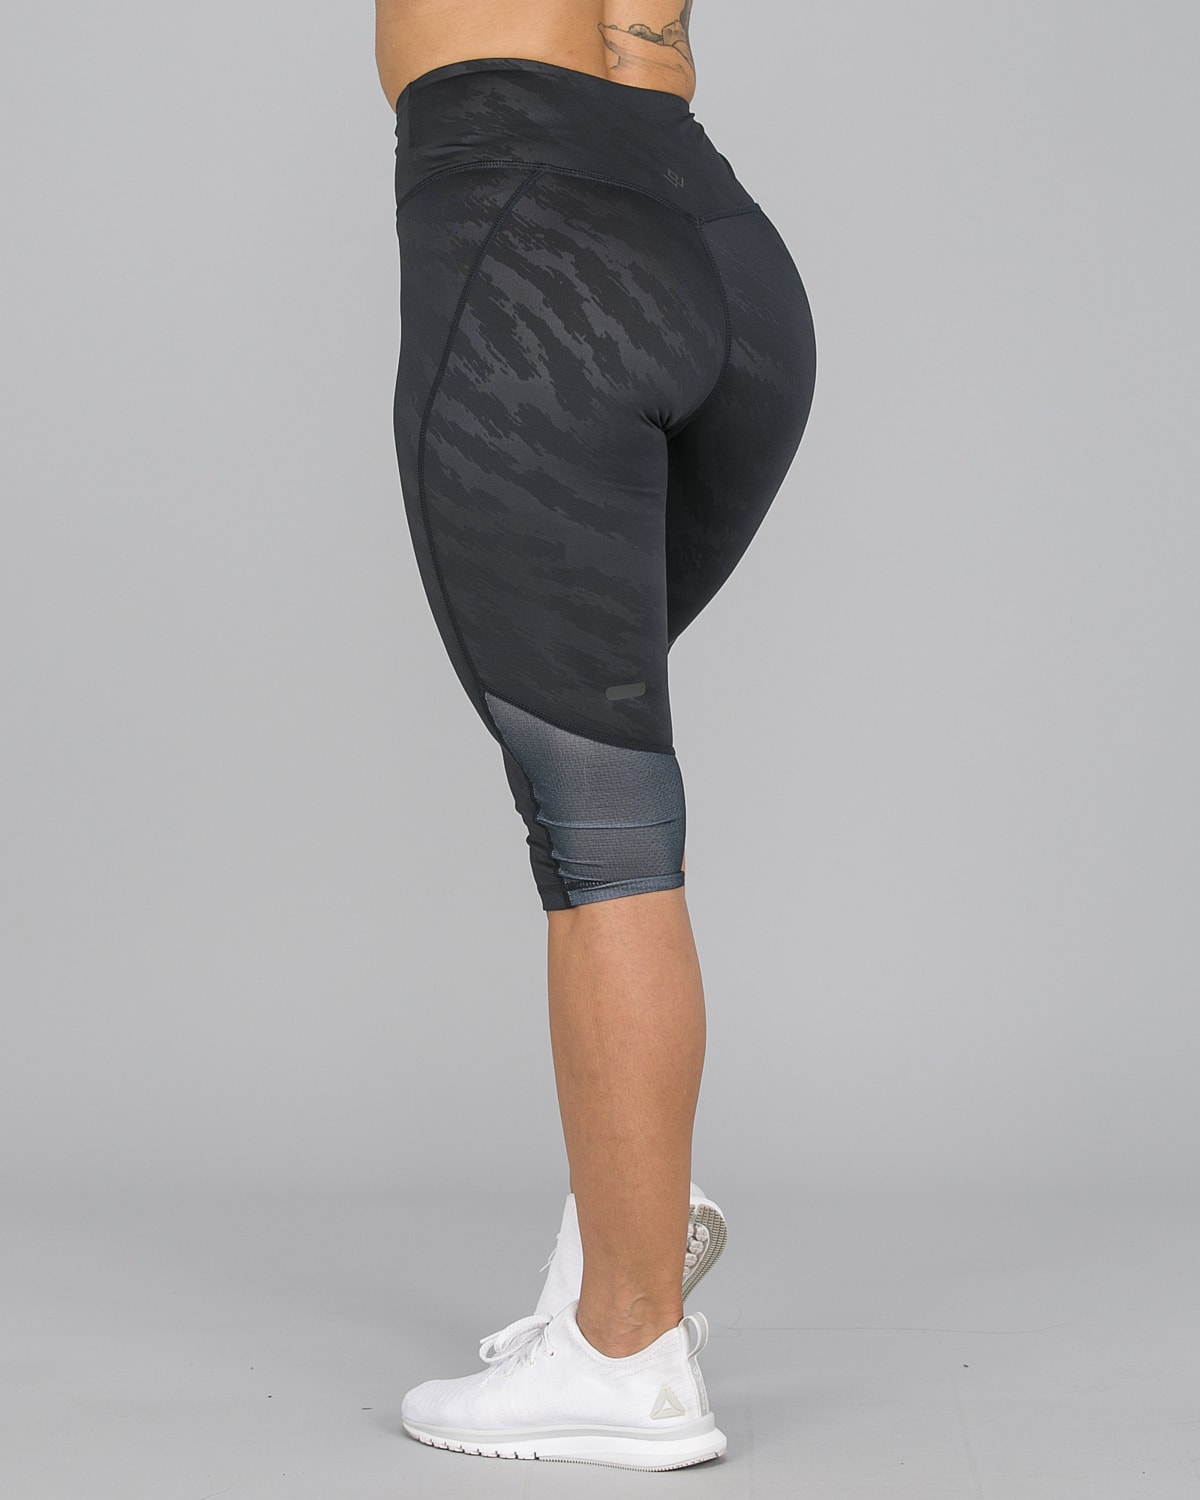 Workout Empire – Elevate 3:4 Leggings – Svart9